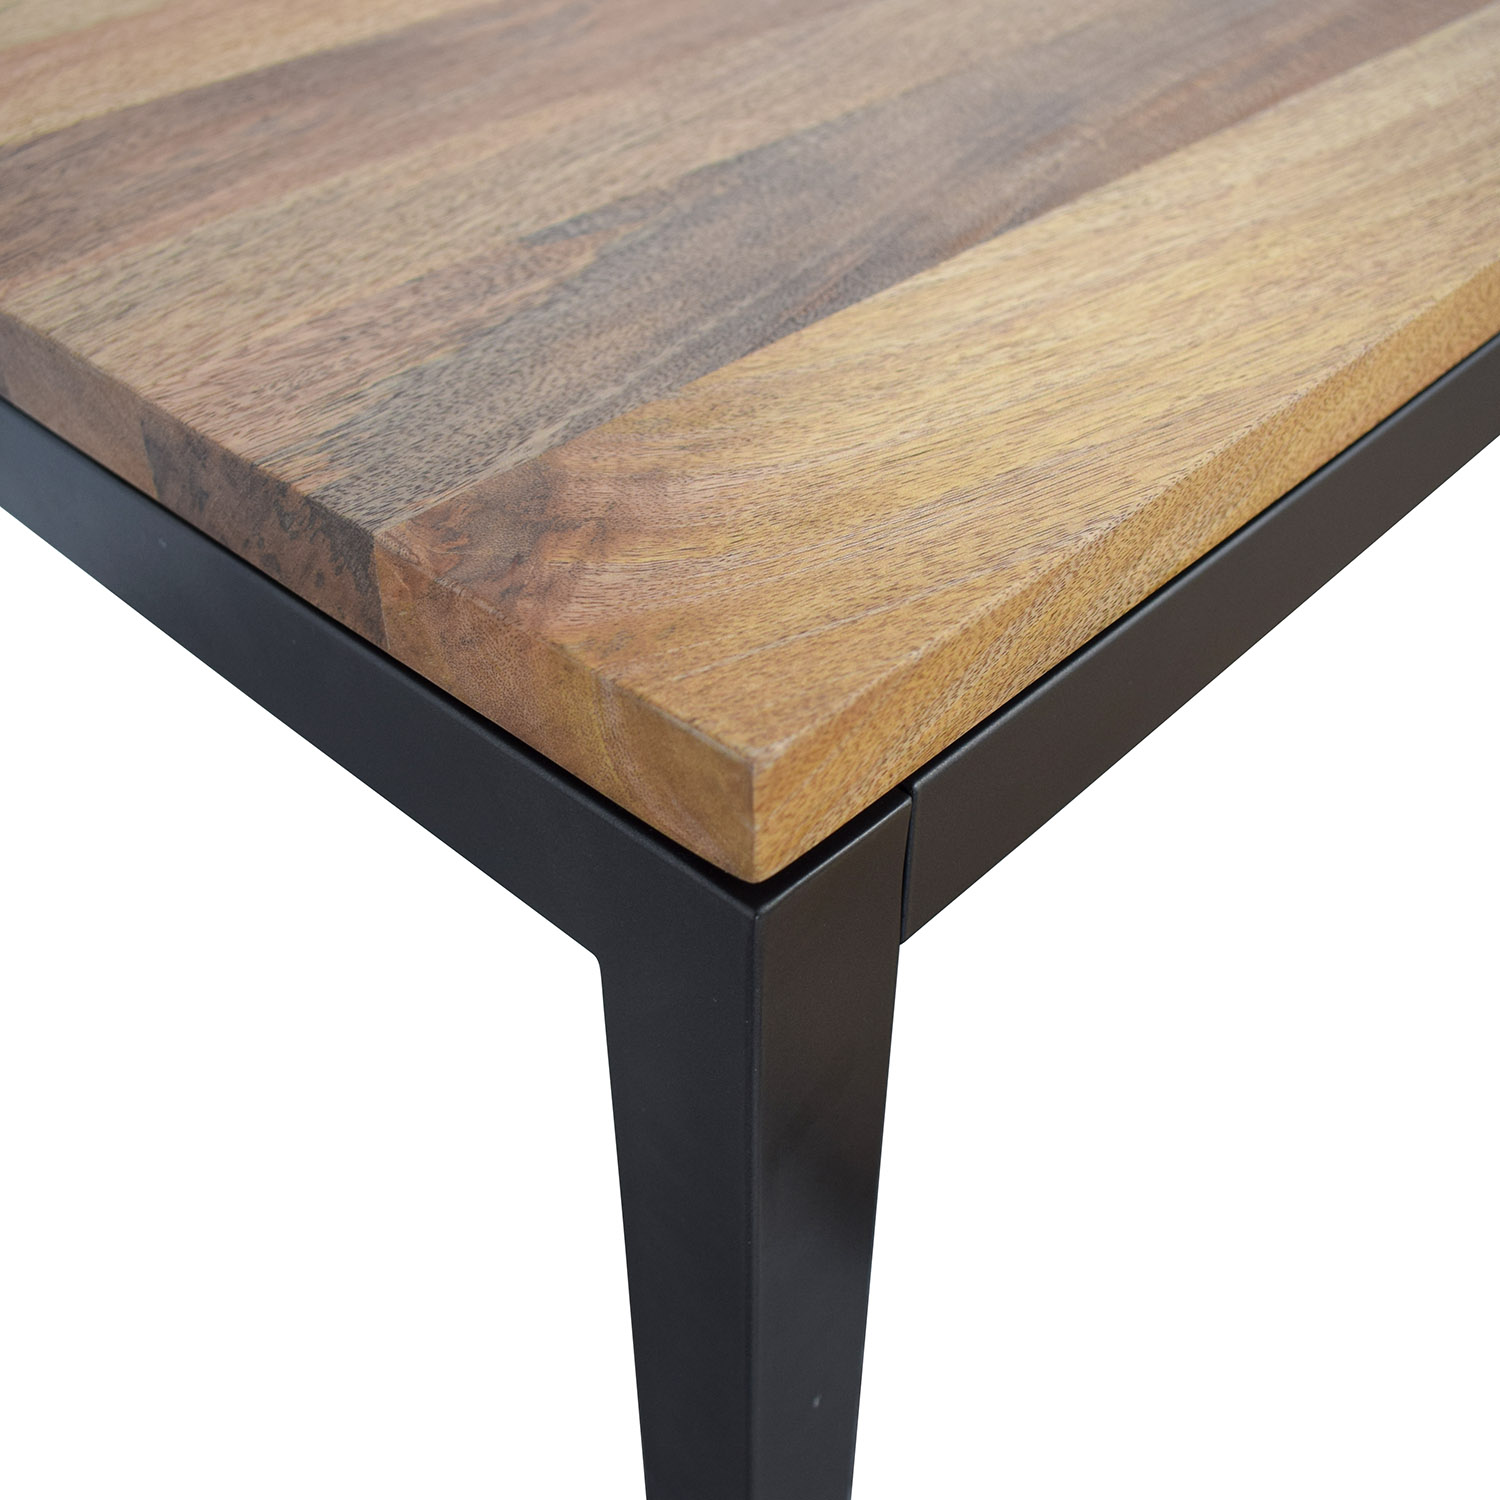 West Elm West Elm Dining Table and Bench Tables